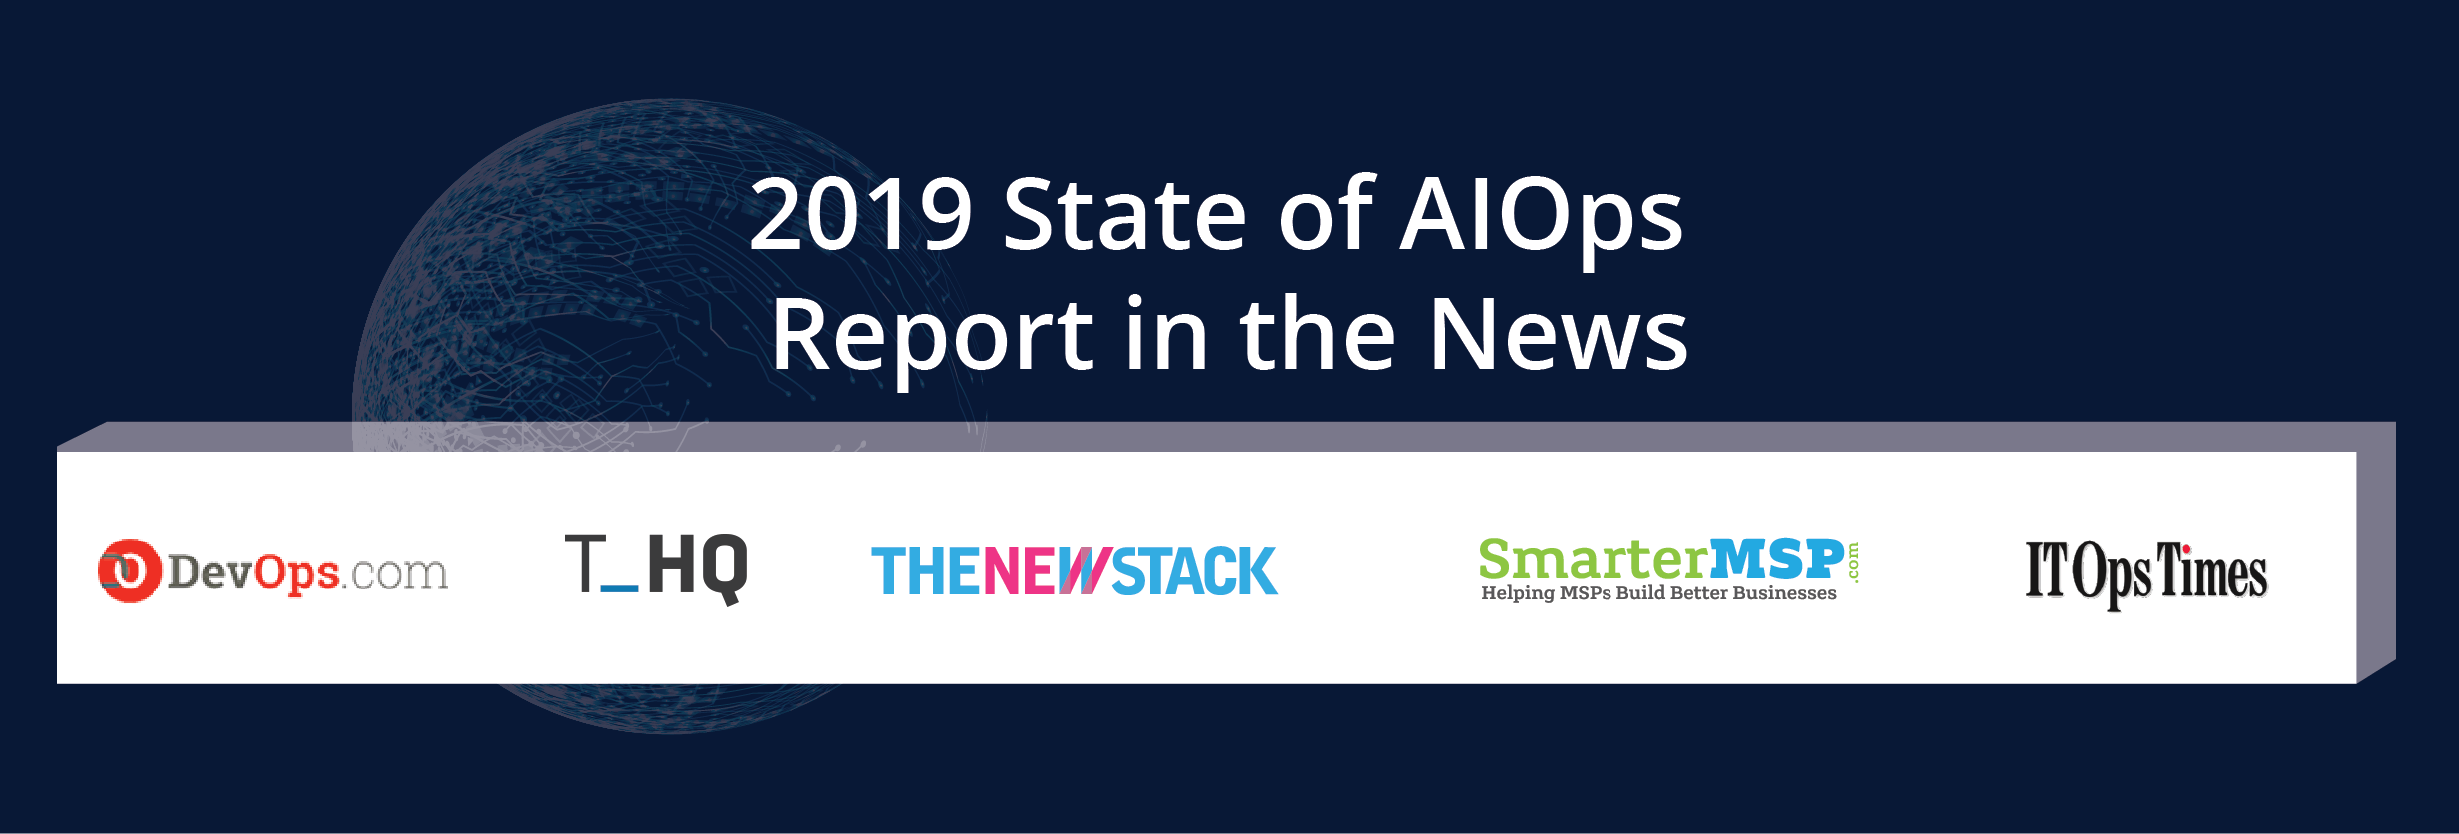 In the News: What The Press Have to Say about 'The State of AIOps' Report